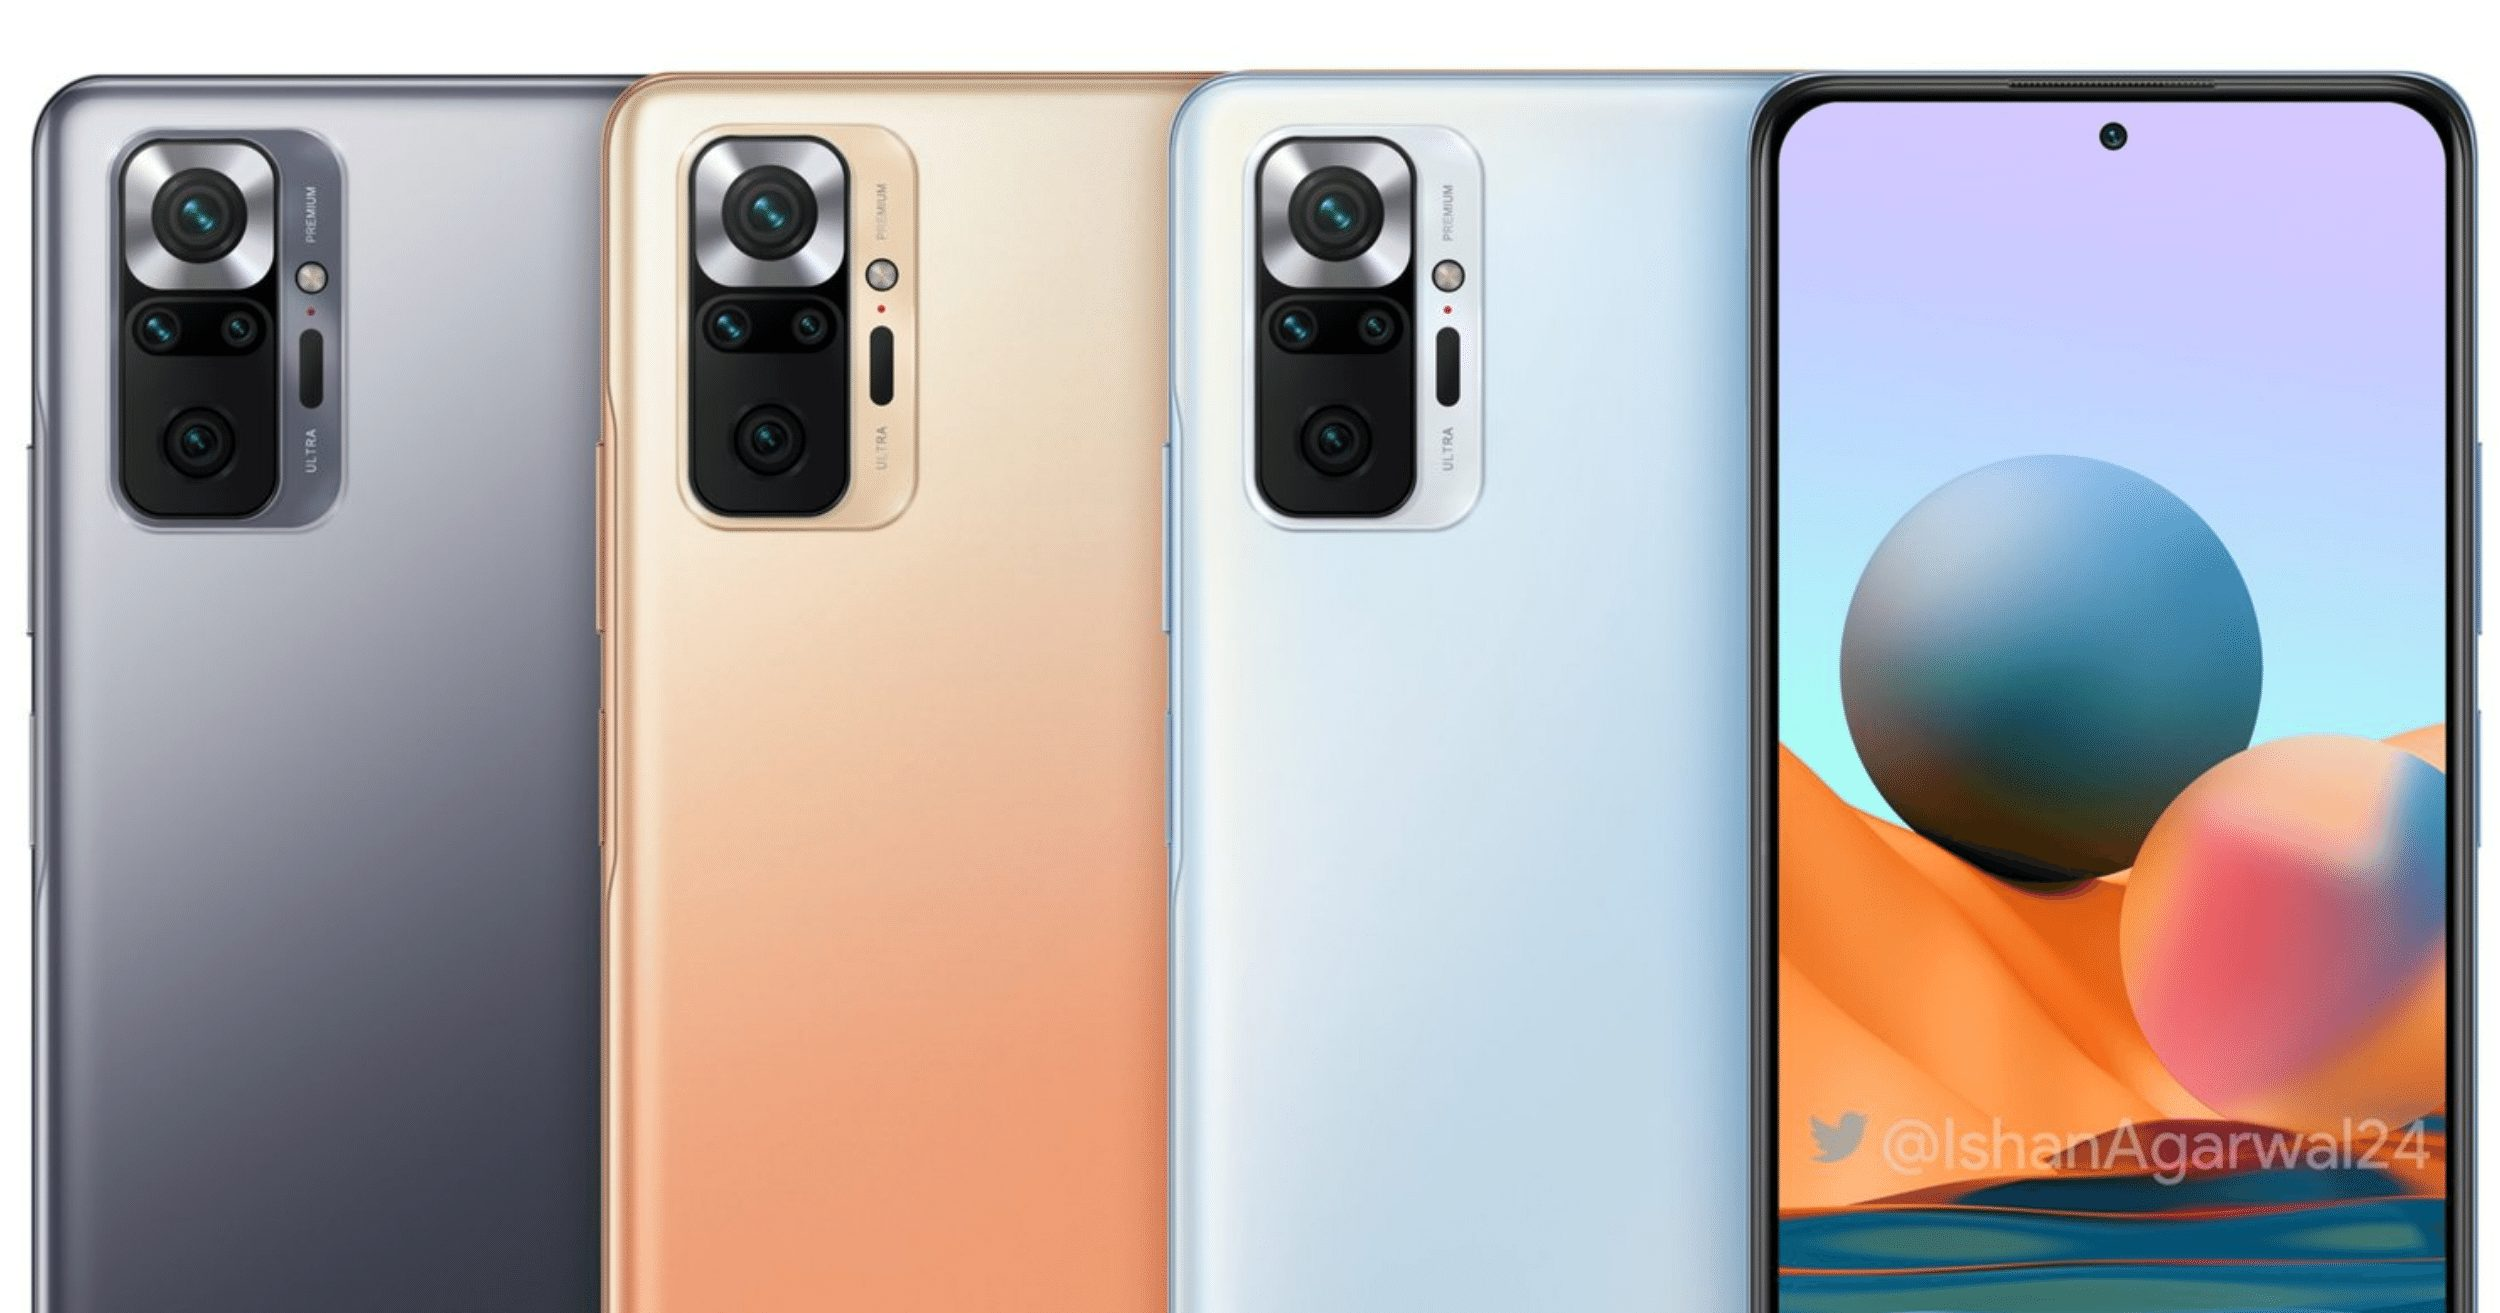 redmi-note-10-pro-series-to-use-120hz-amoled-108mp-64mp-cameras-and-sd-732g